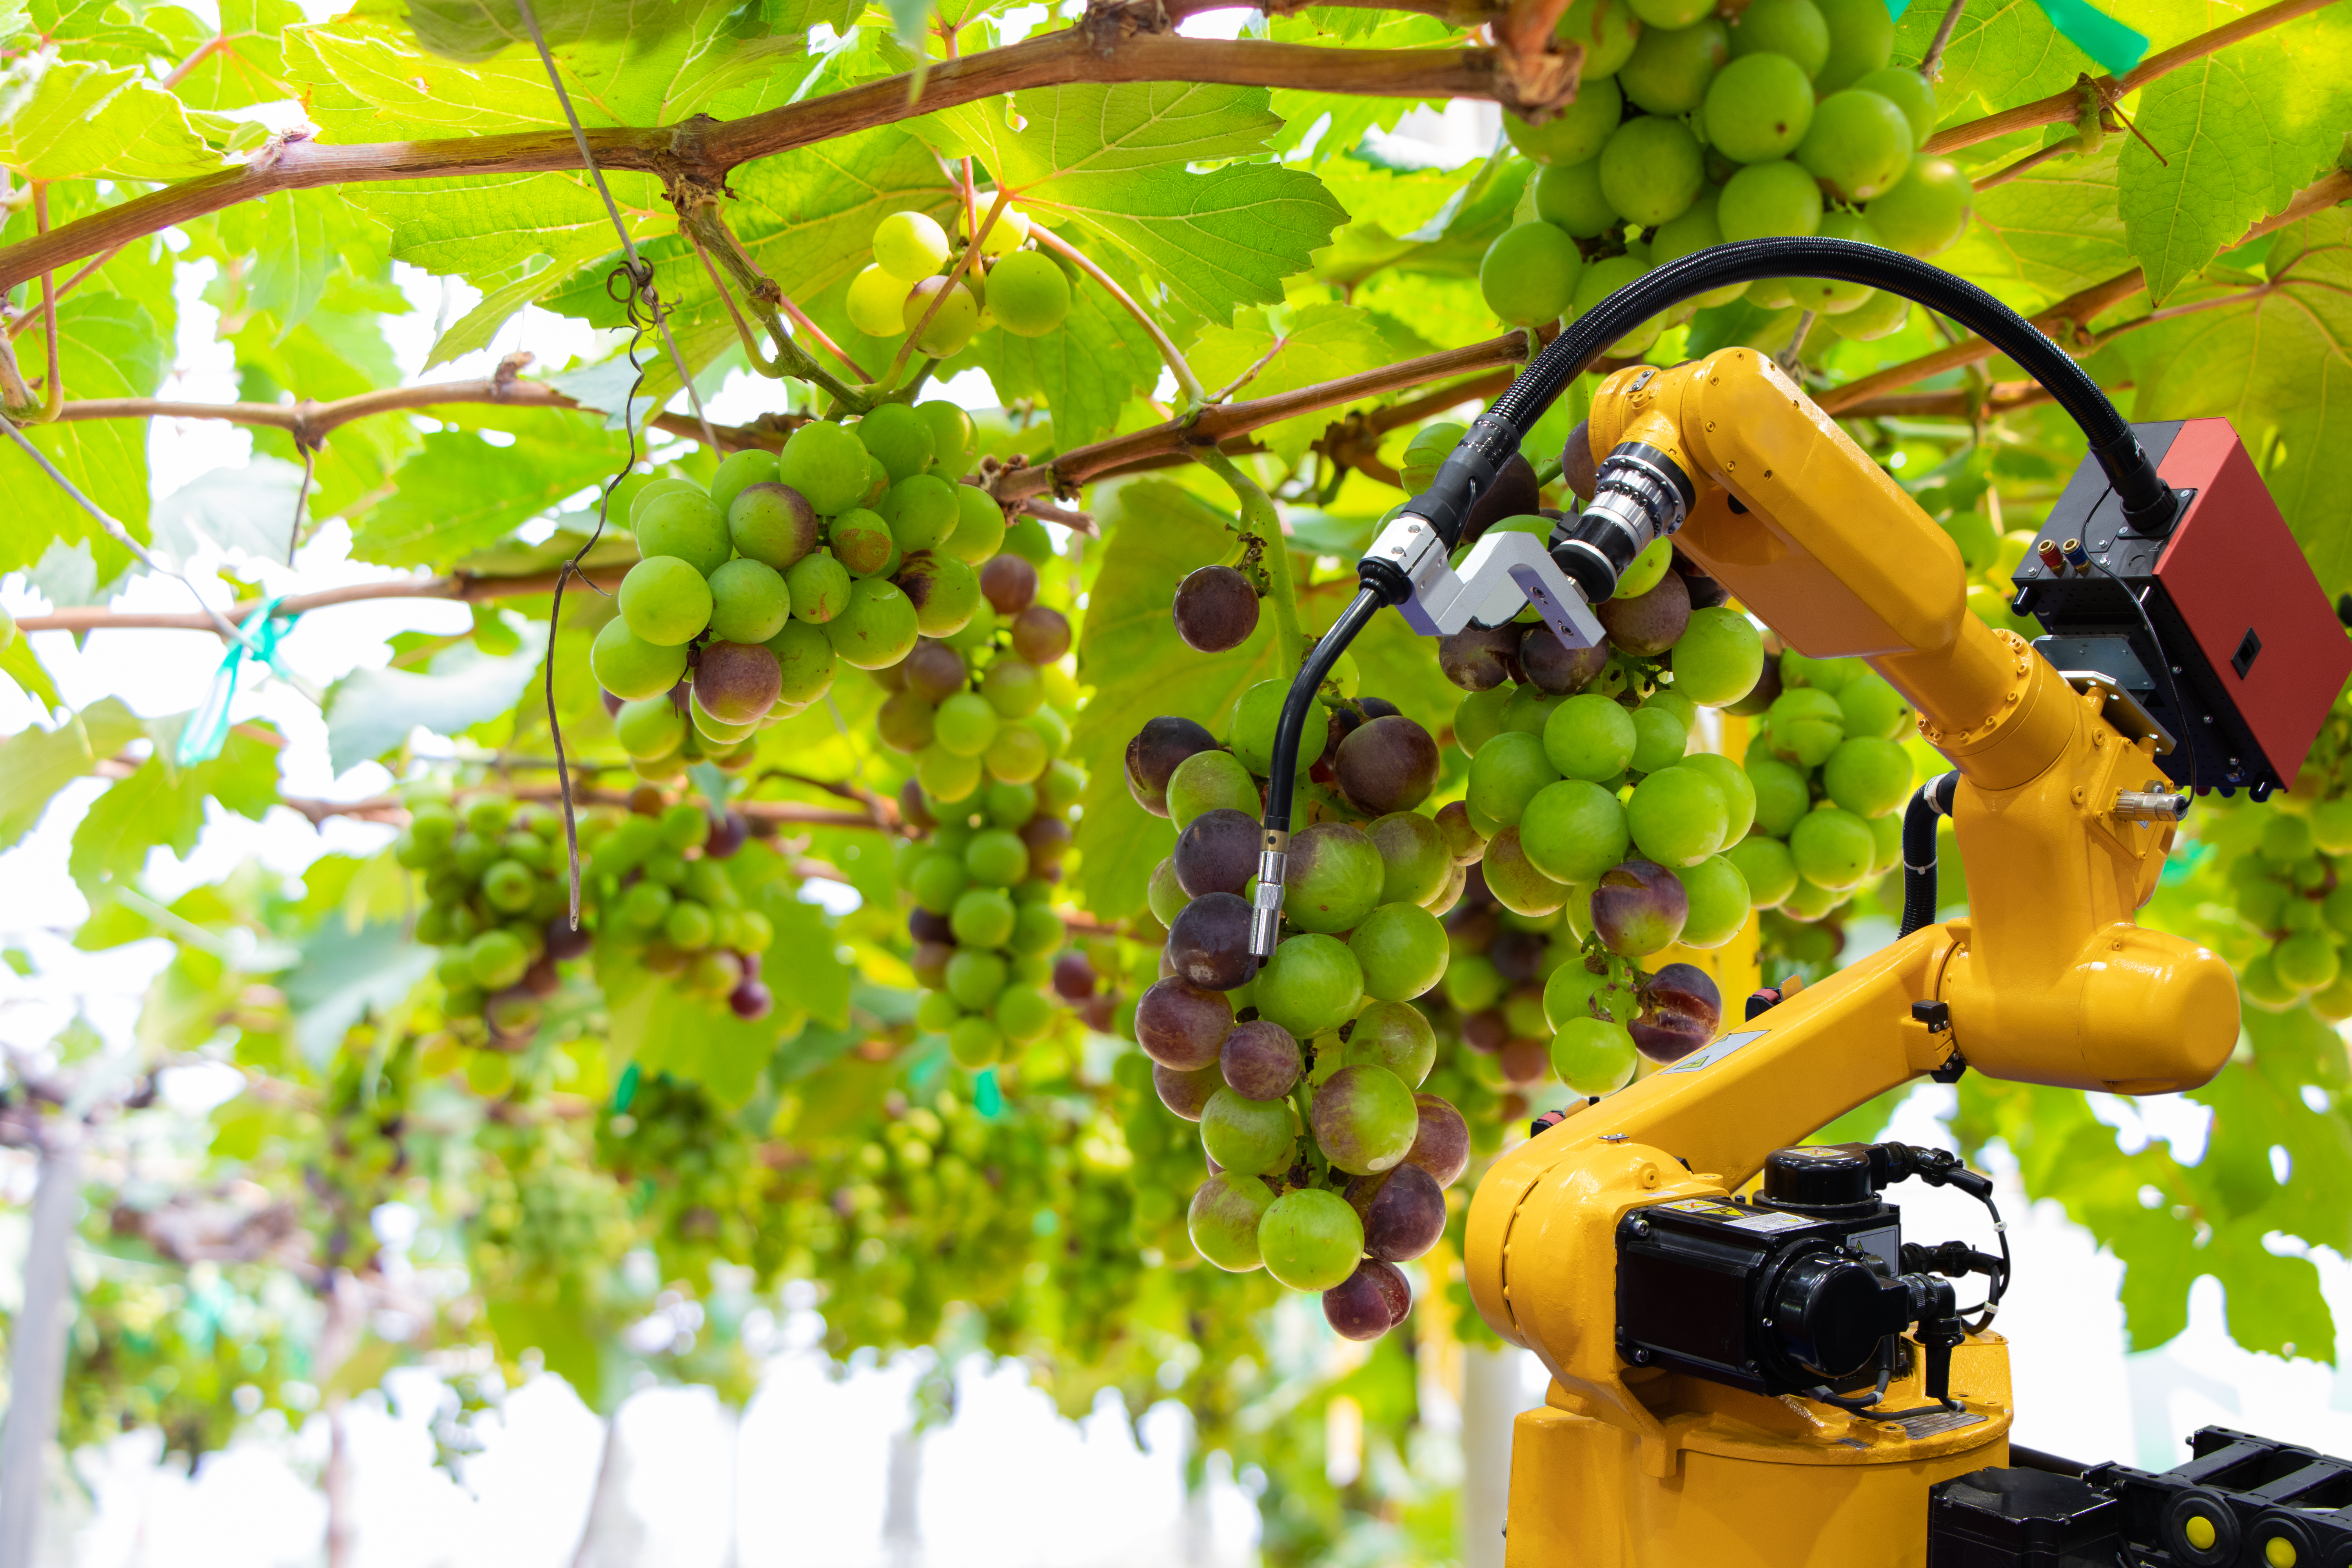 robot arm picking grapes on vine